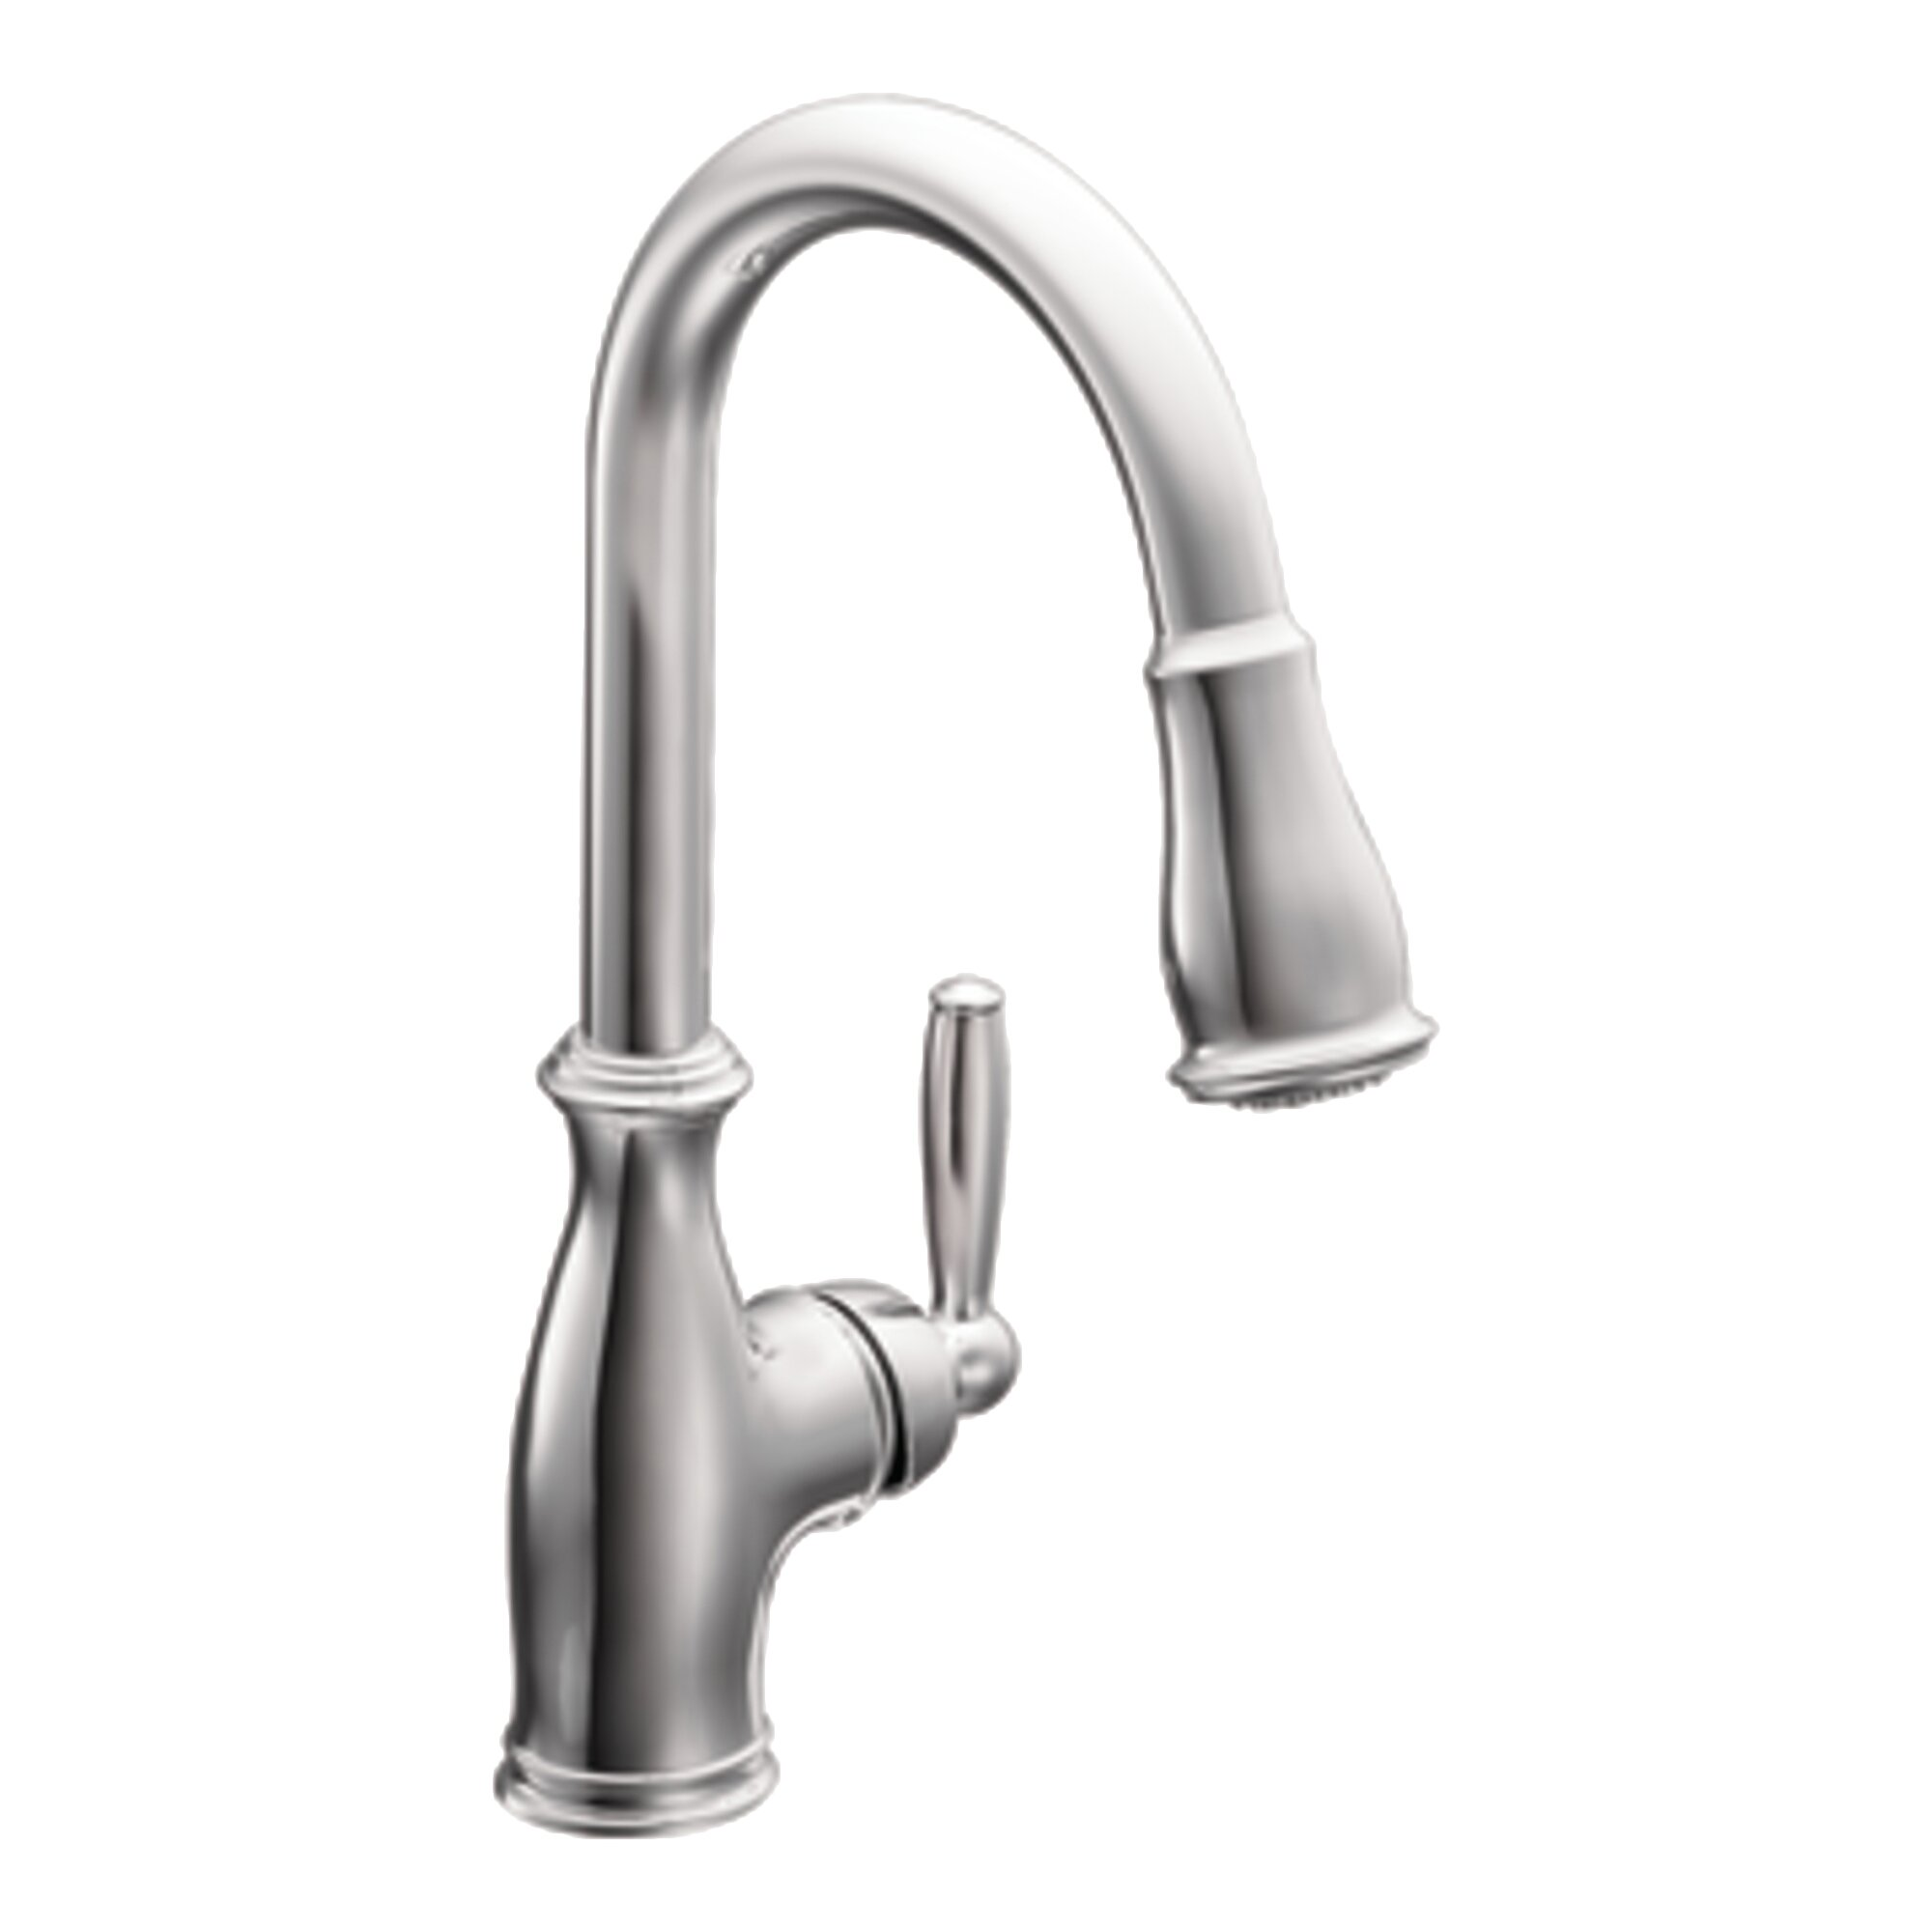 Moen Kitchen Faucet Pull Out Moen Brantford Single Handle Pull Down Kitchen Faucet Reviews